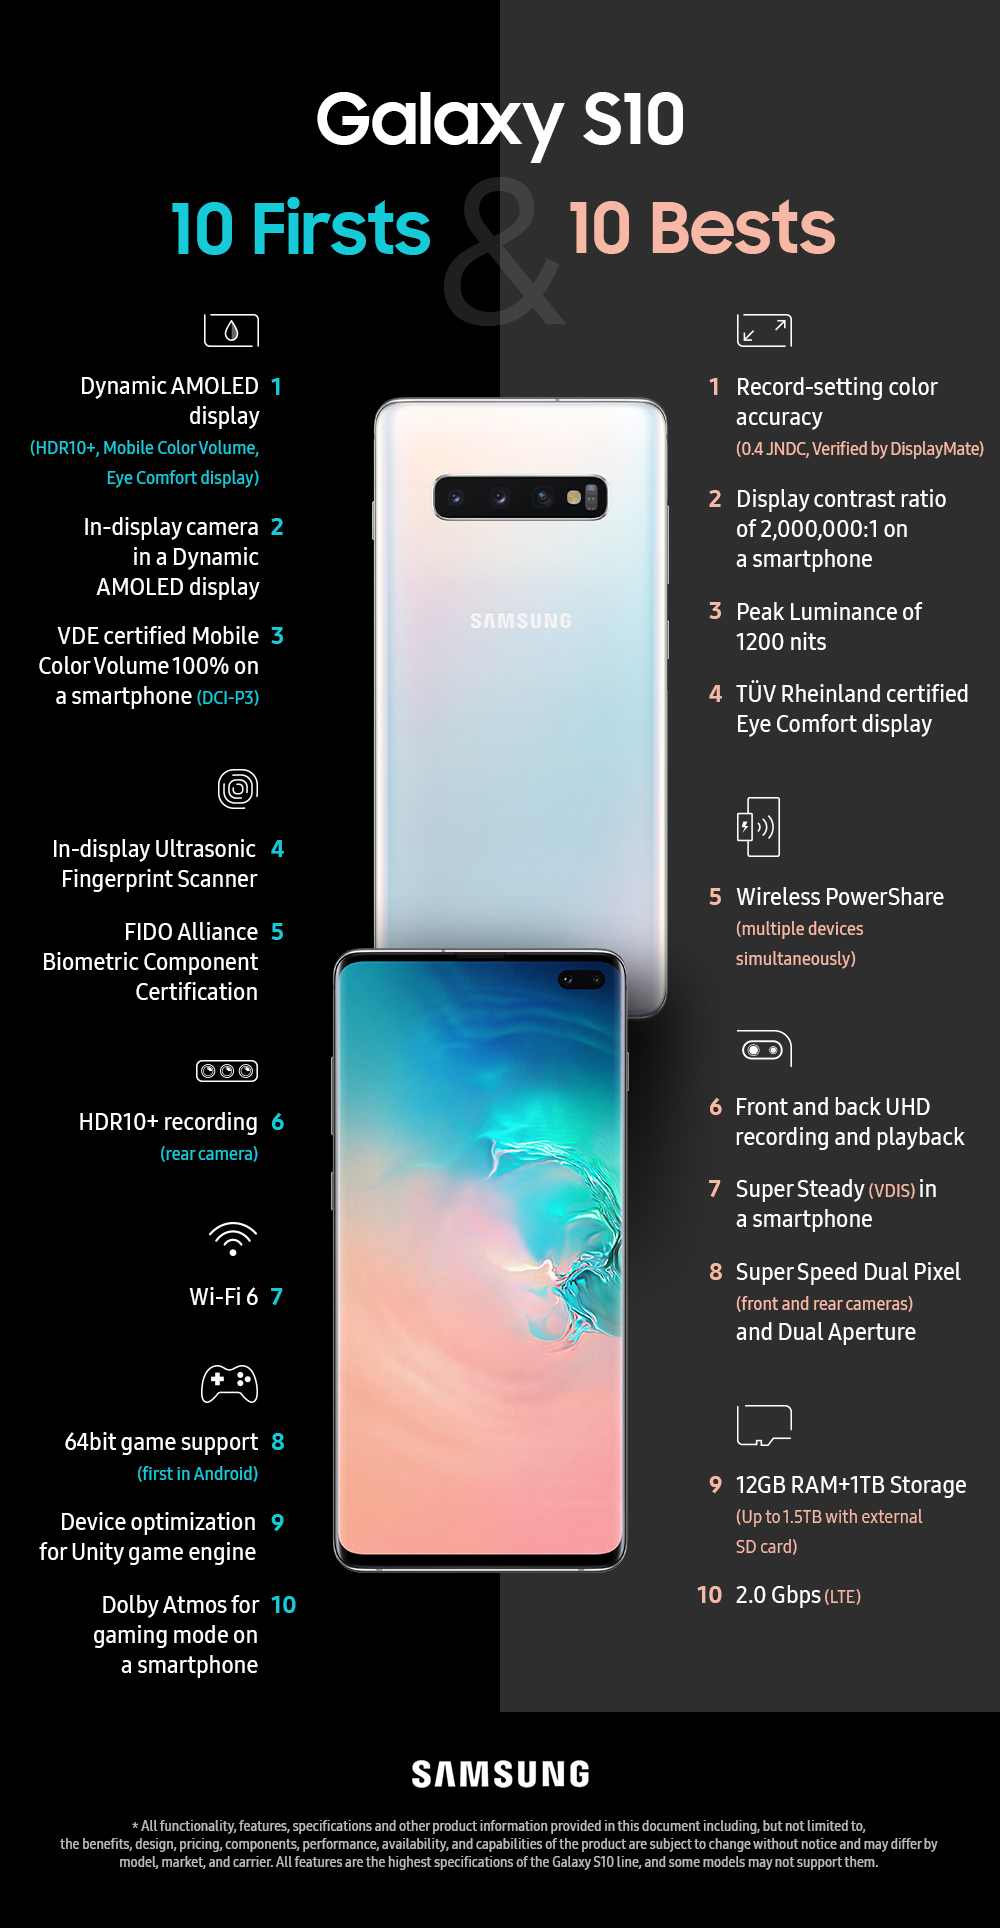 Infographic] 10 Firsts and 10 Bests from the Galaxy S10